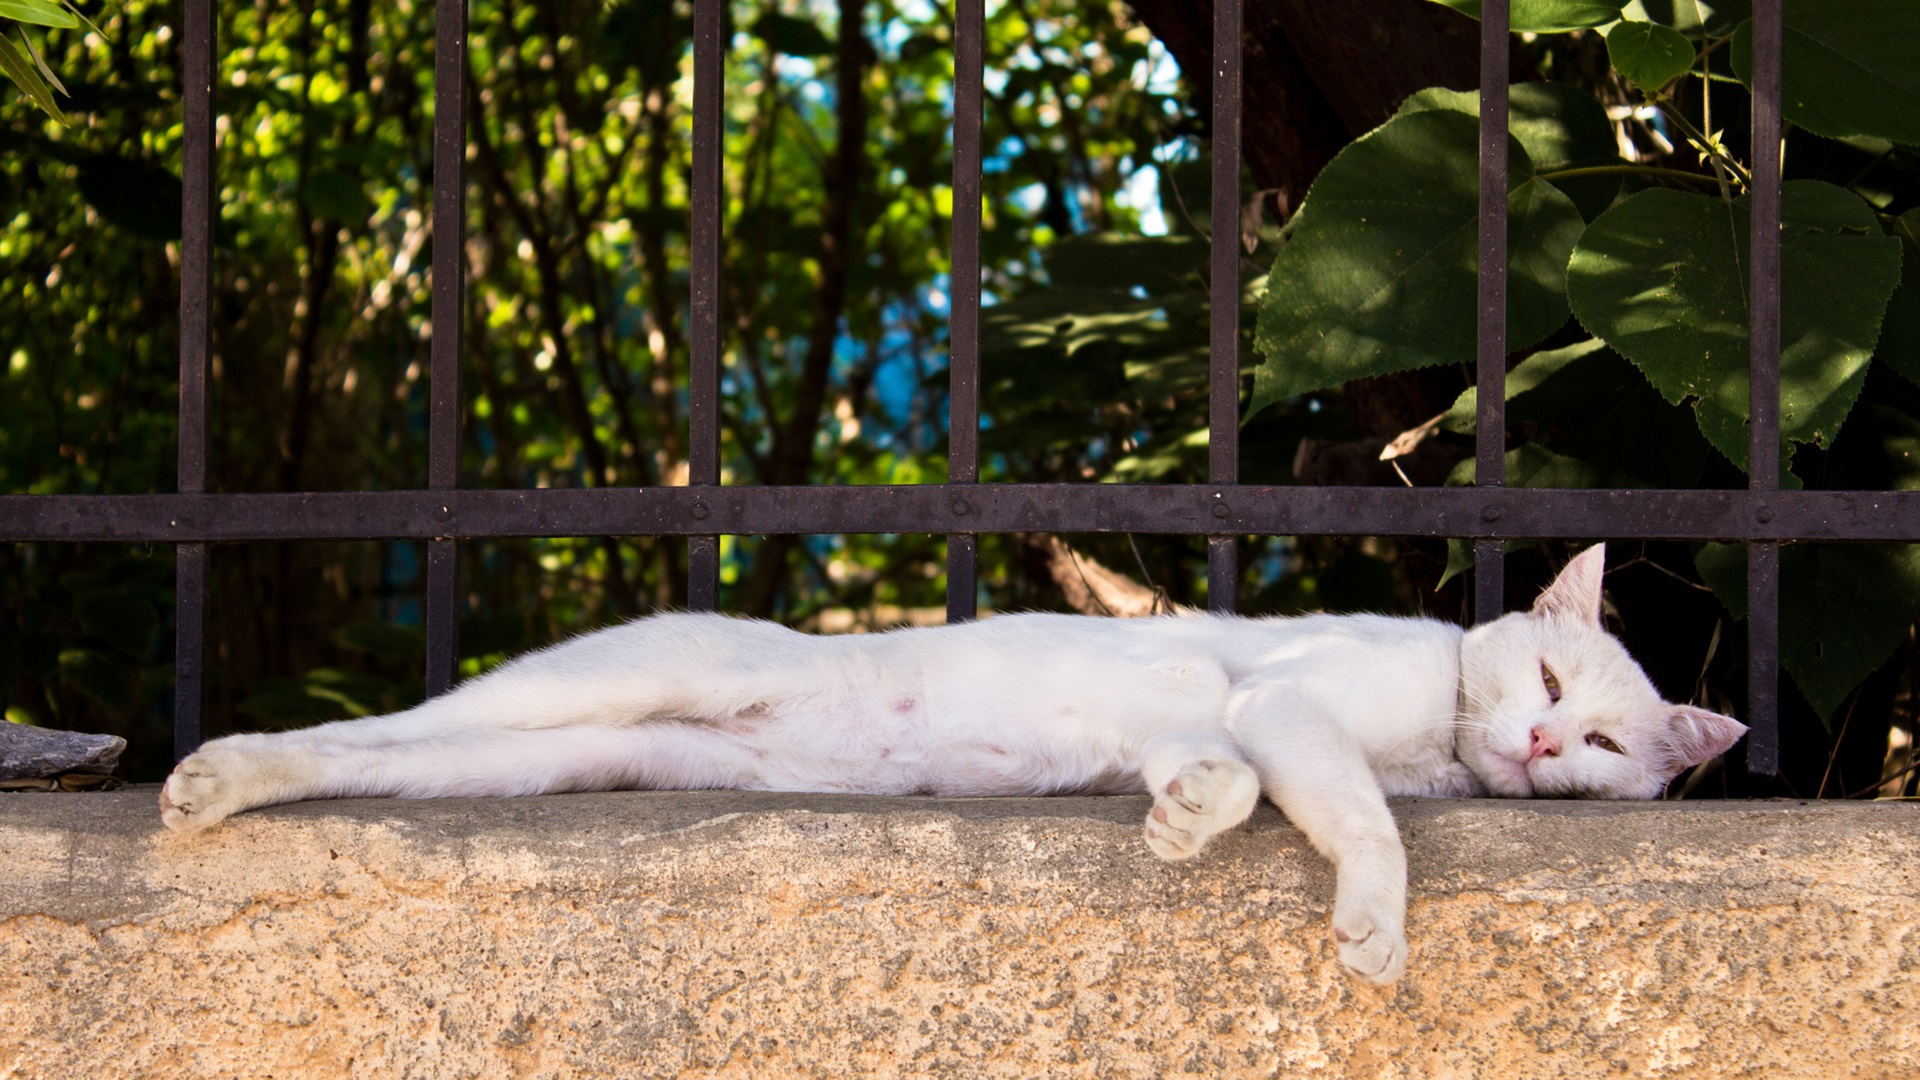 Wallpaper White Cat Lying On Fence Side 1920x1200 Hd Picture Image